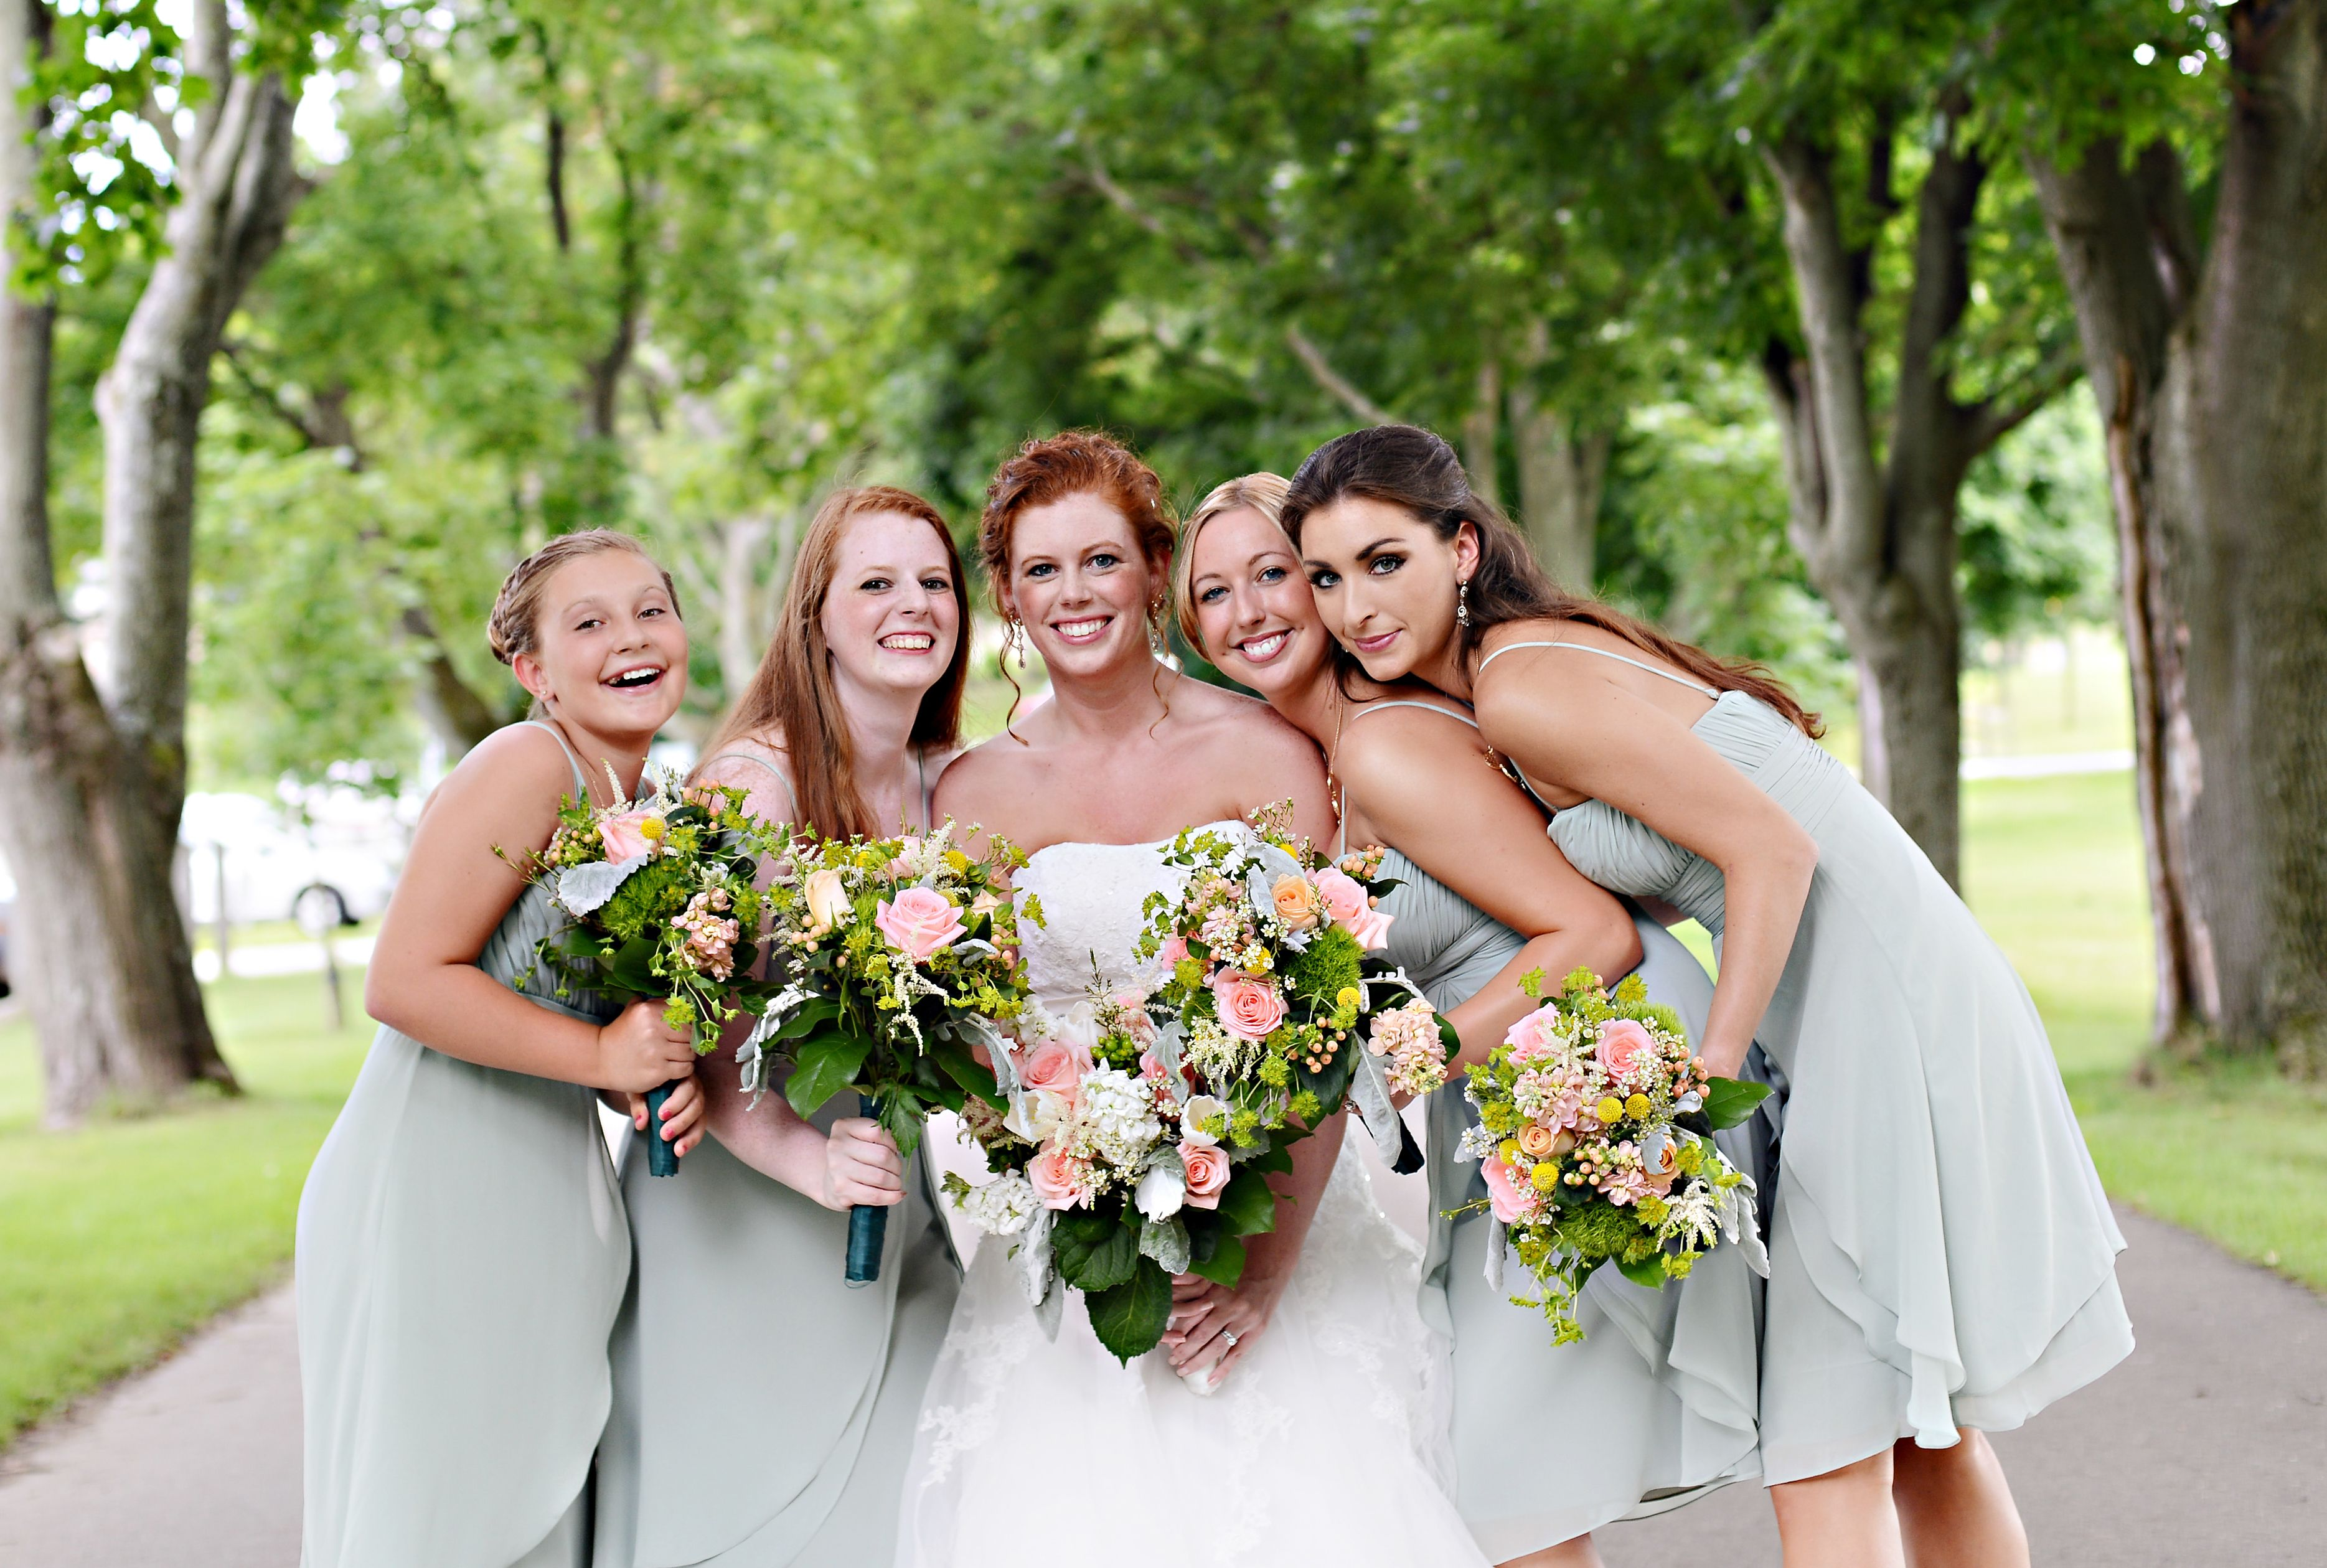 Bill levkoff bridesmaid dresses in pistachio coral and green bill levkoff bridesmaid dresses in pistachio coral and green bouquets ombrellifo Image collections